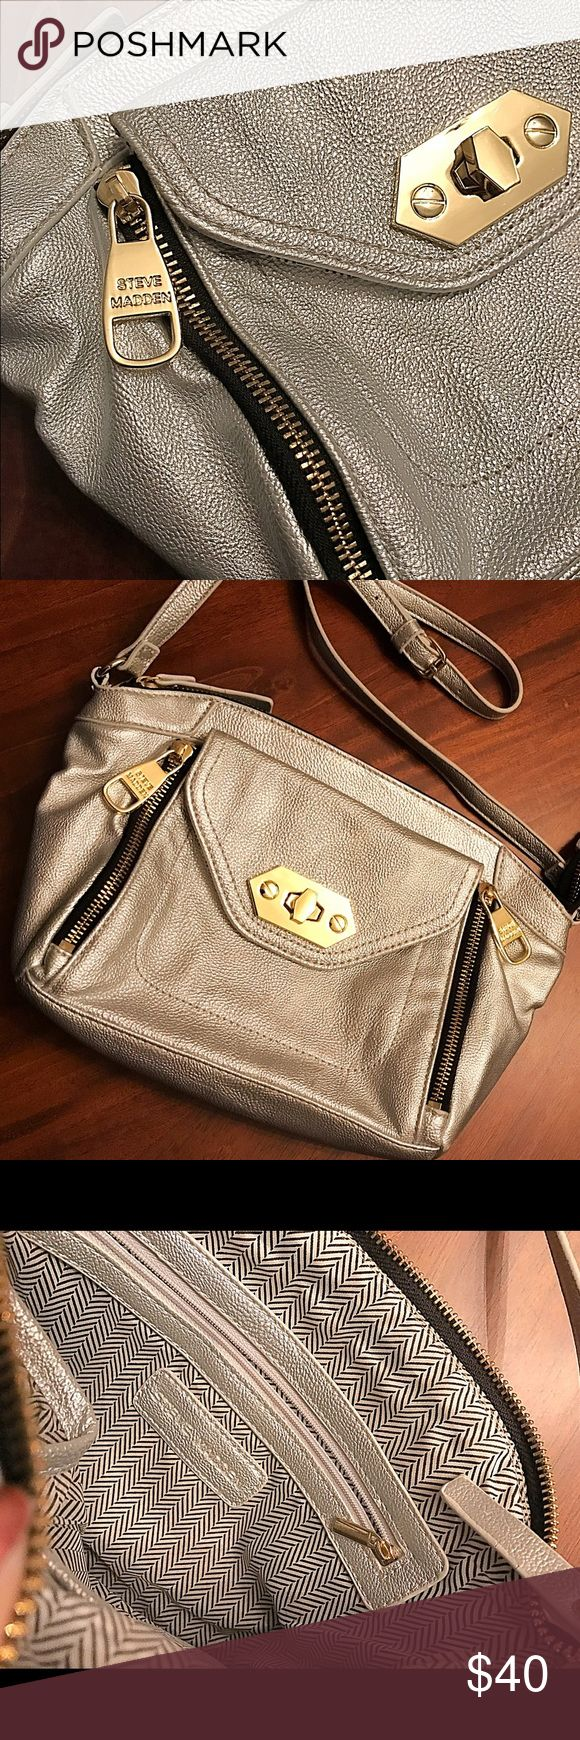 Steve Madden Silver Small Purse Cute small silver clutch with long strap, never used! Steve Madden Bags Mini Bags